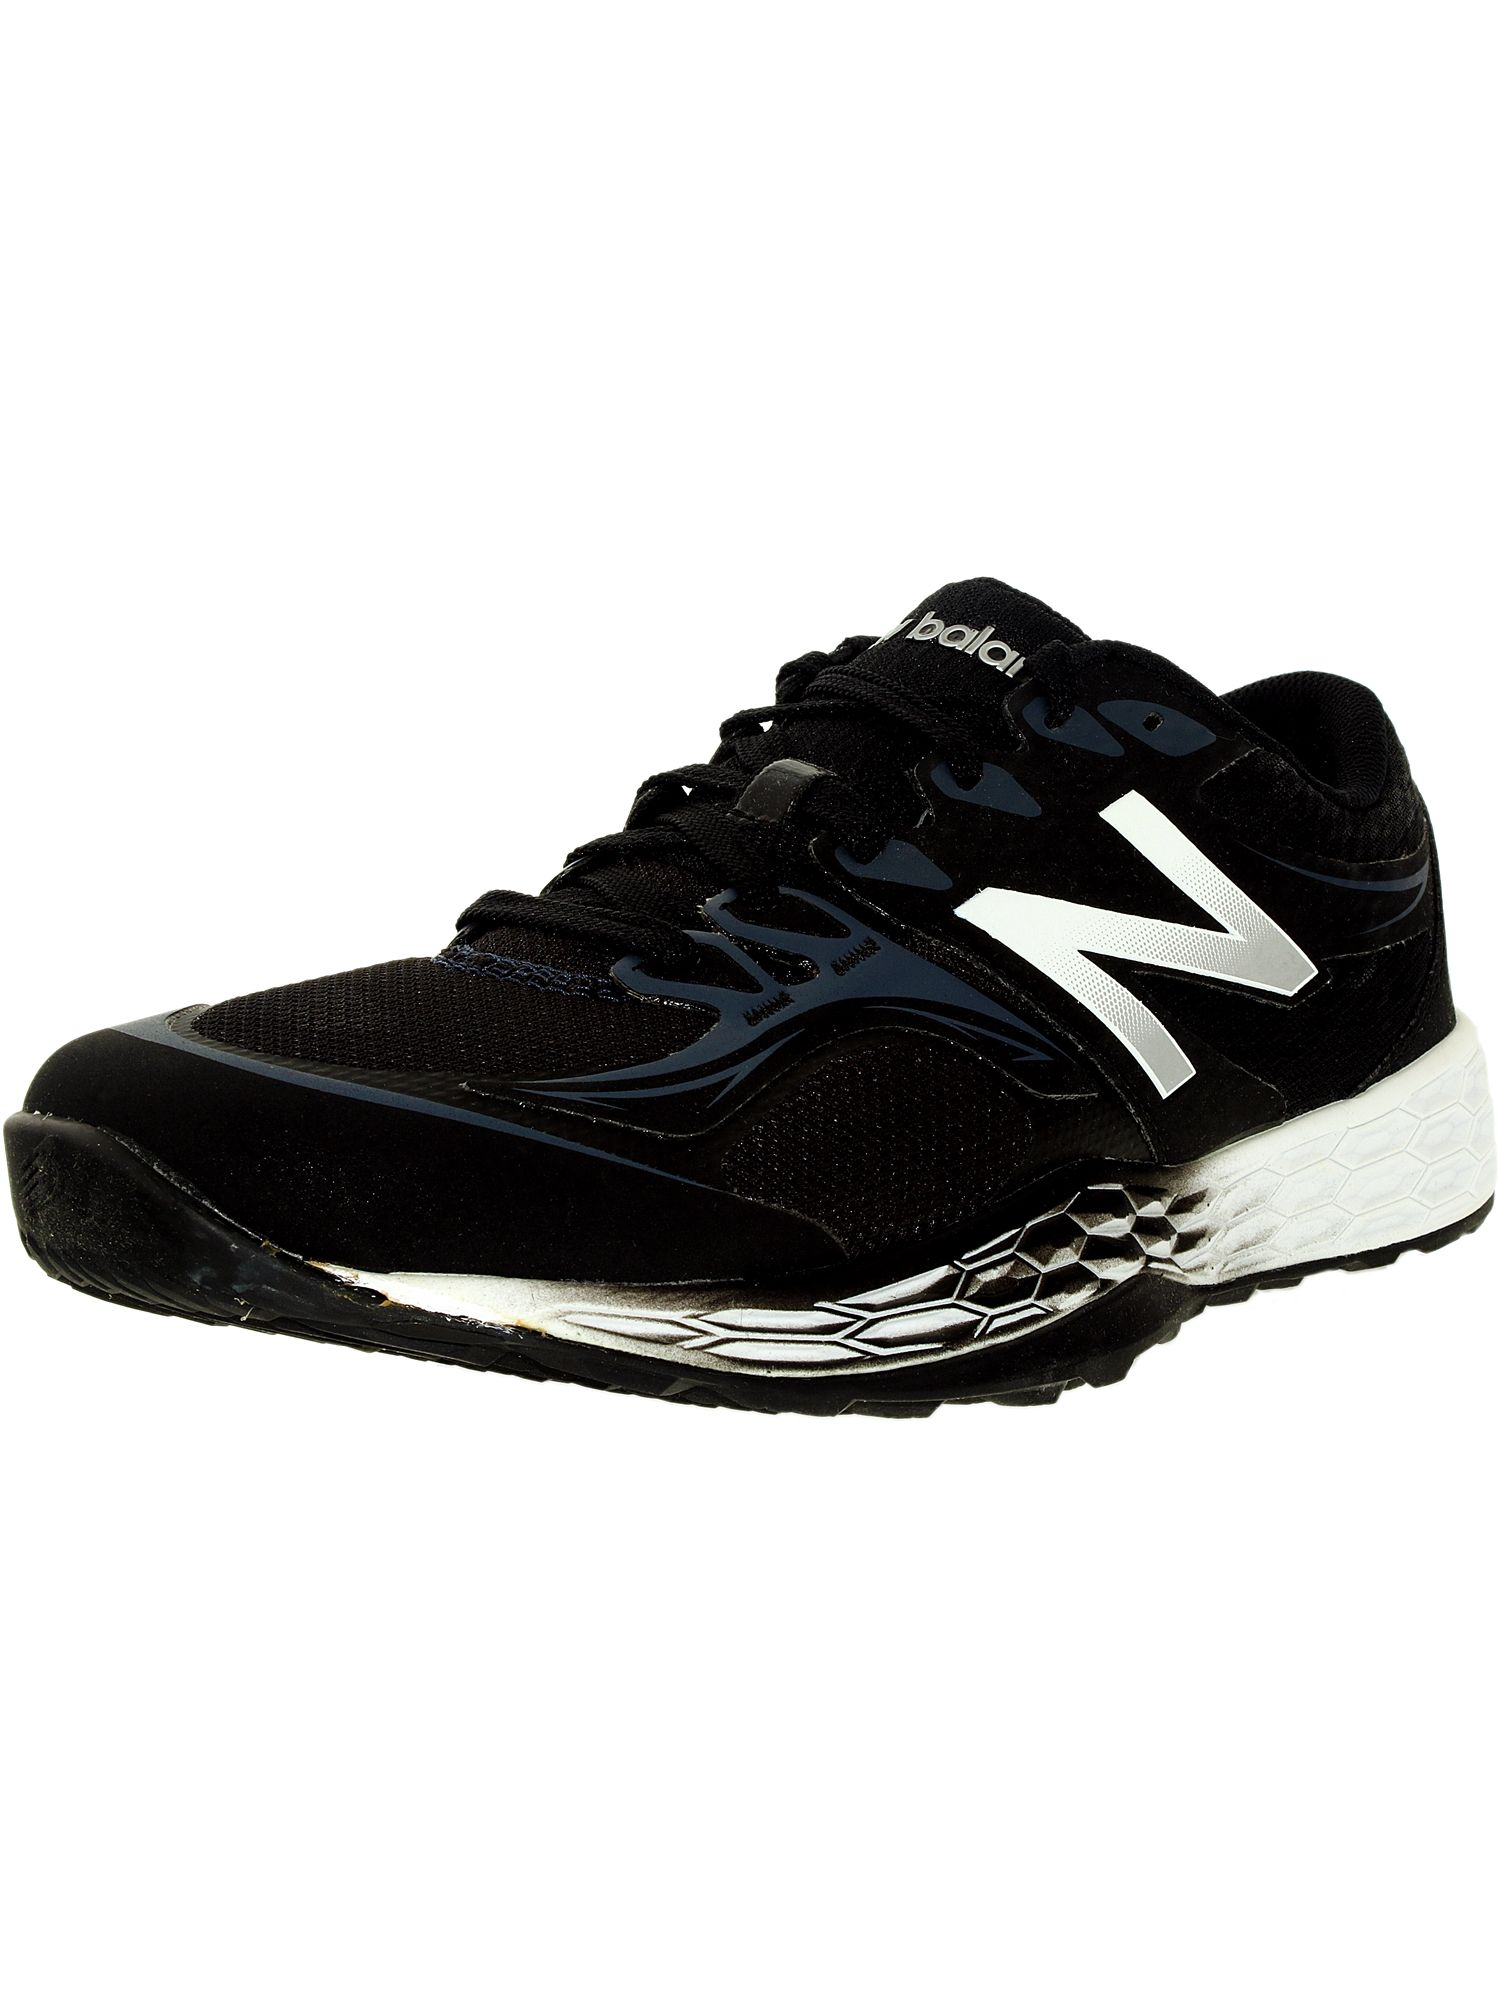 1f00927179 NEW BALANCE NEW BALANCE MEN'S MX80BB2 ANKLE-HIGH TENNIS SHOE ...